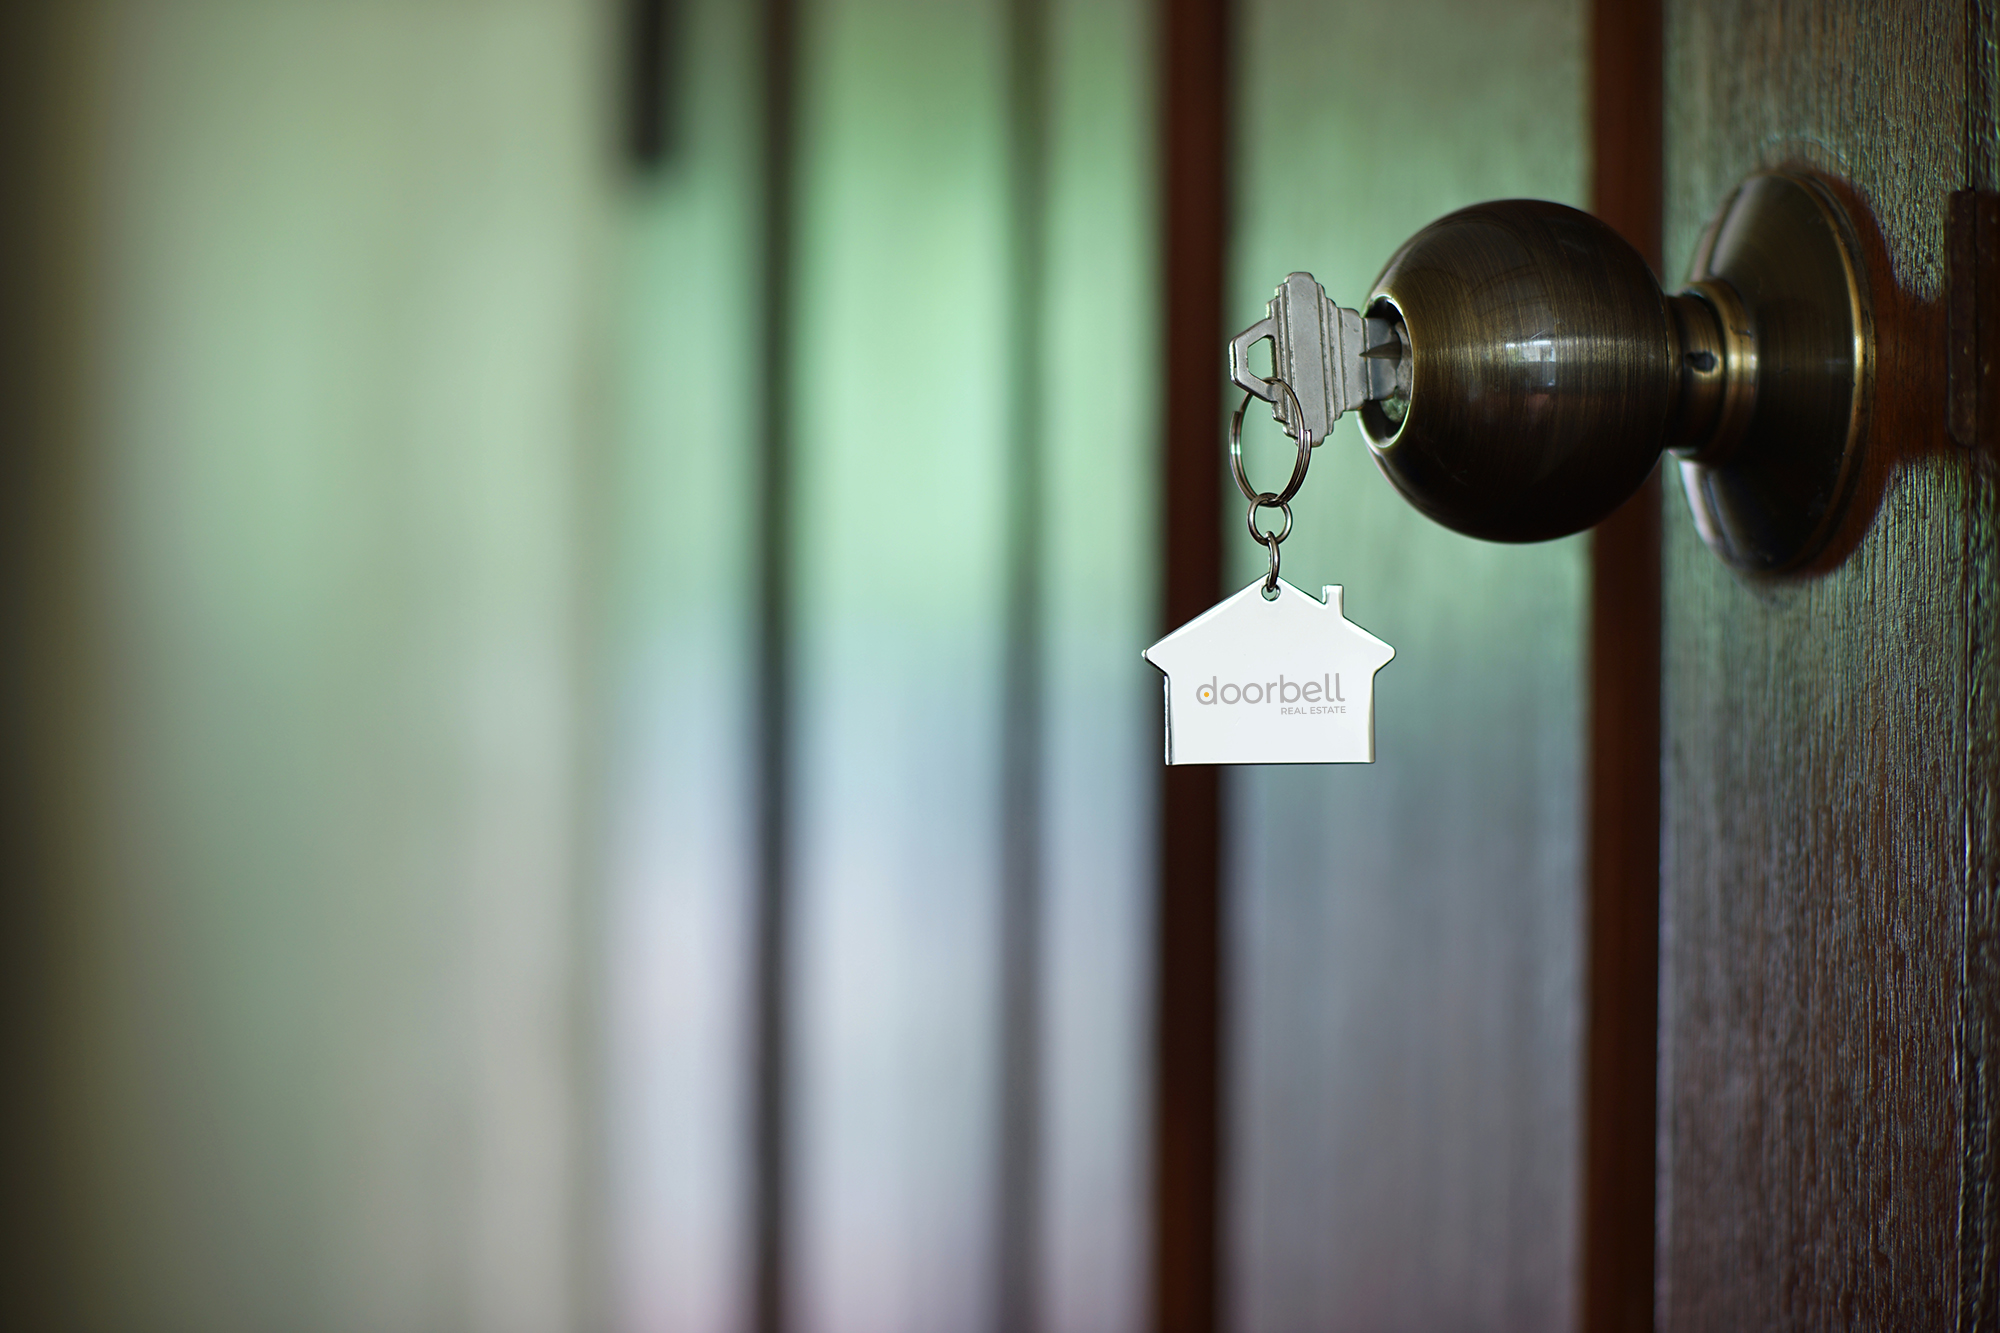 doorbell-real-estate-corporate-image.jpg